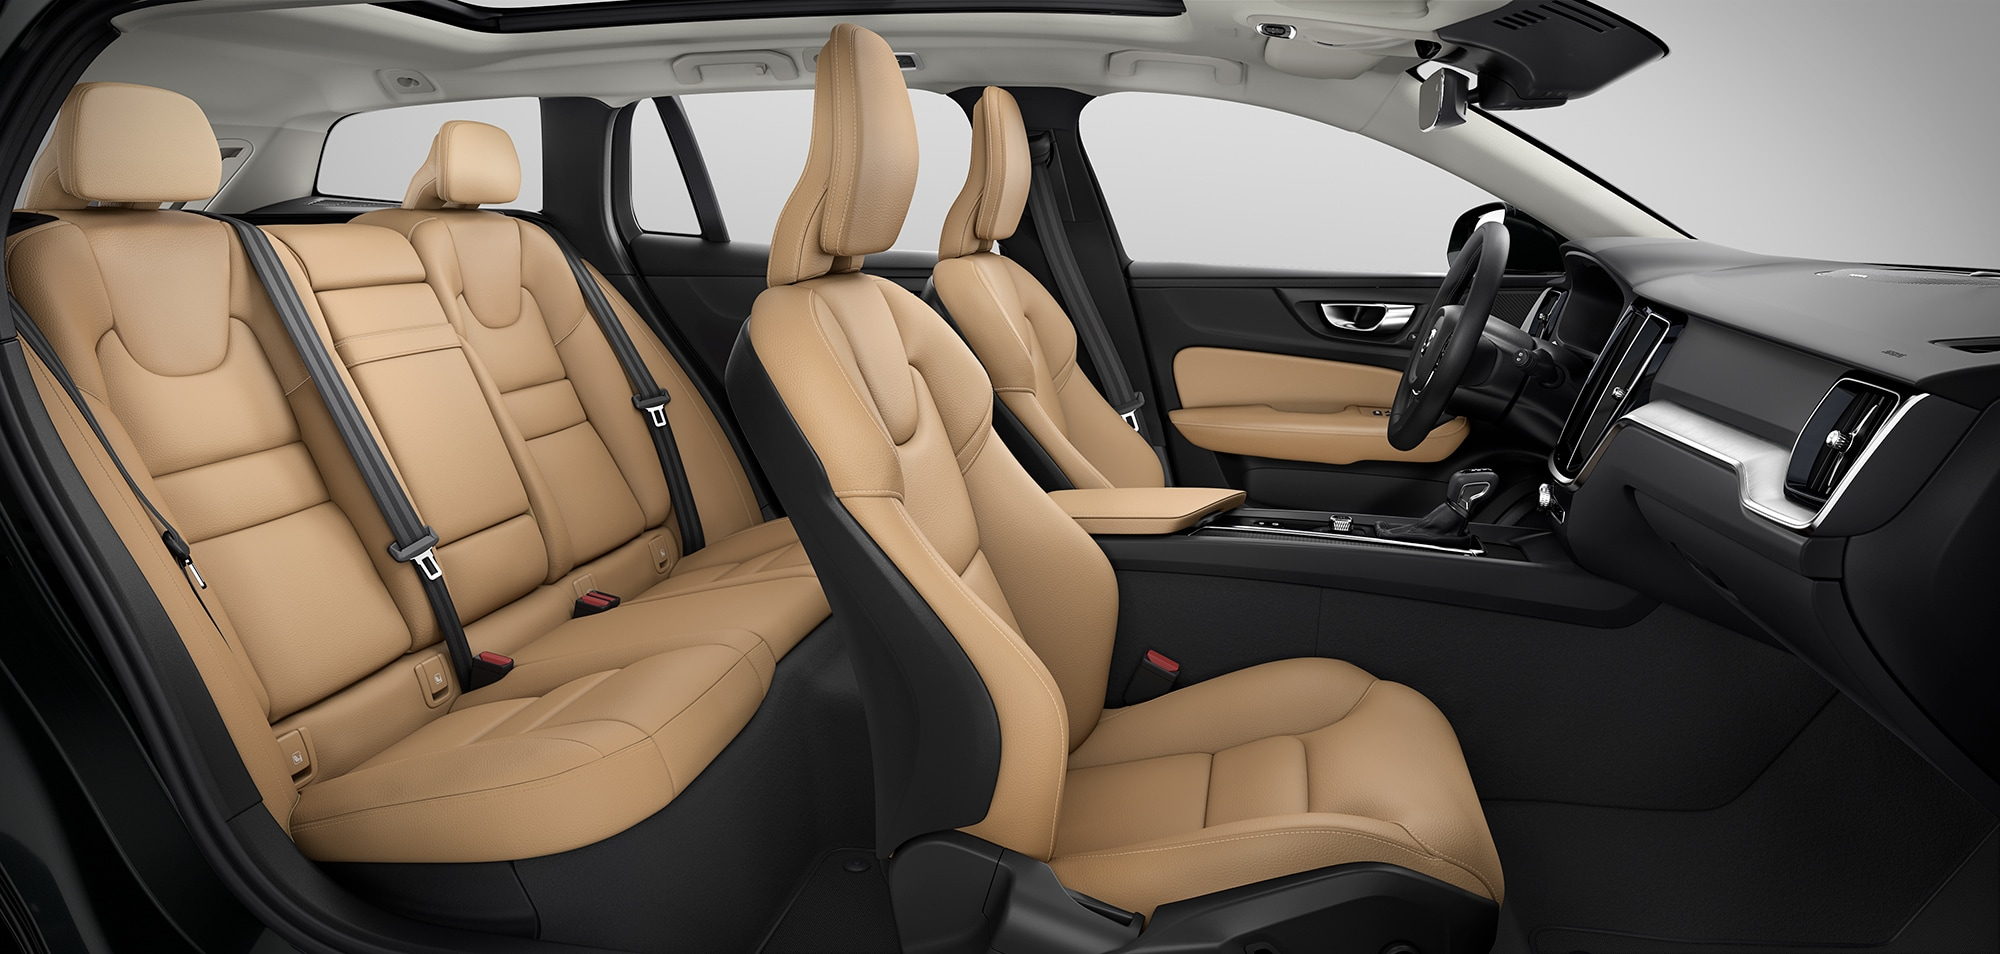 New Volvo V60 Cross Country For Sale In St. Louis, MO